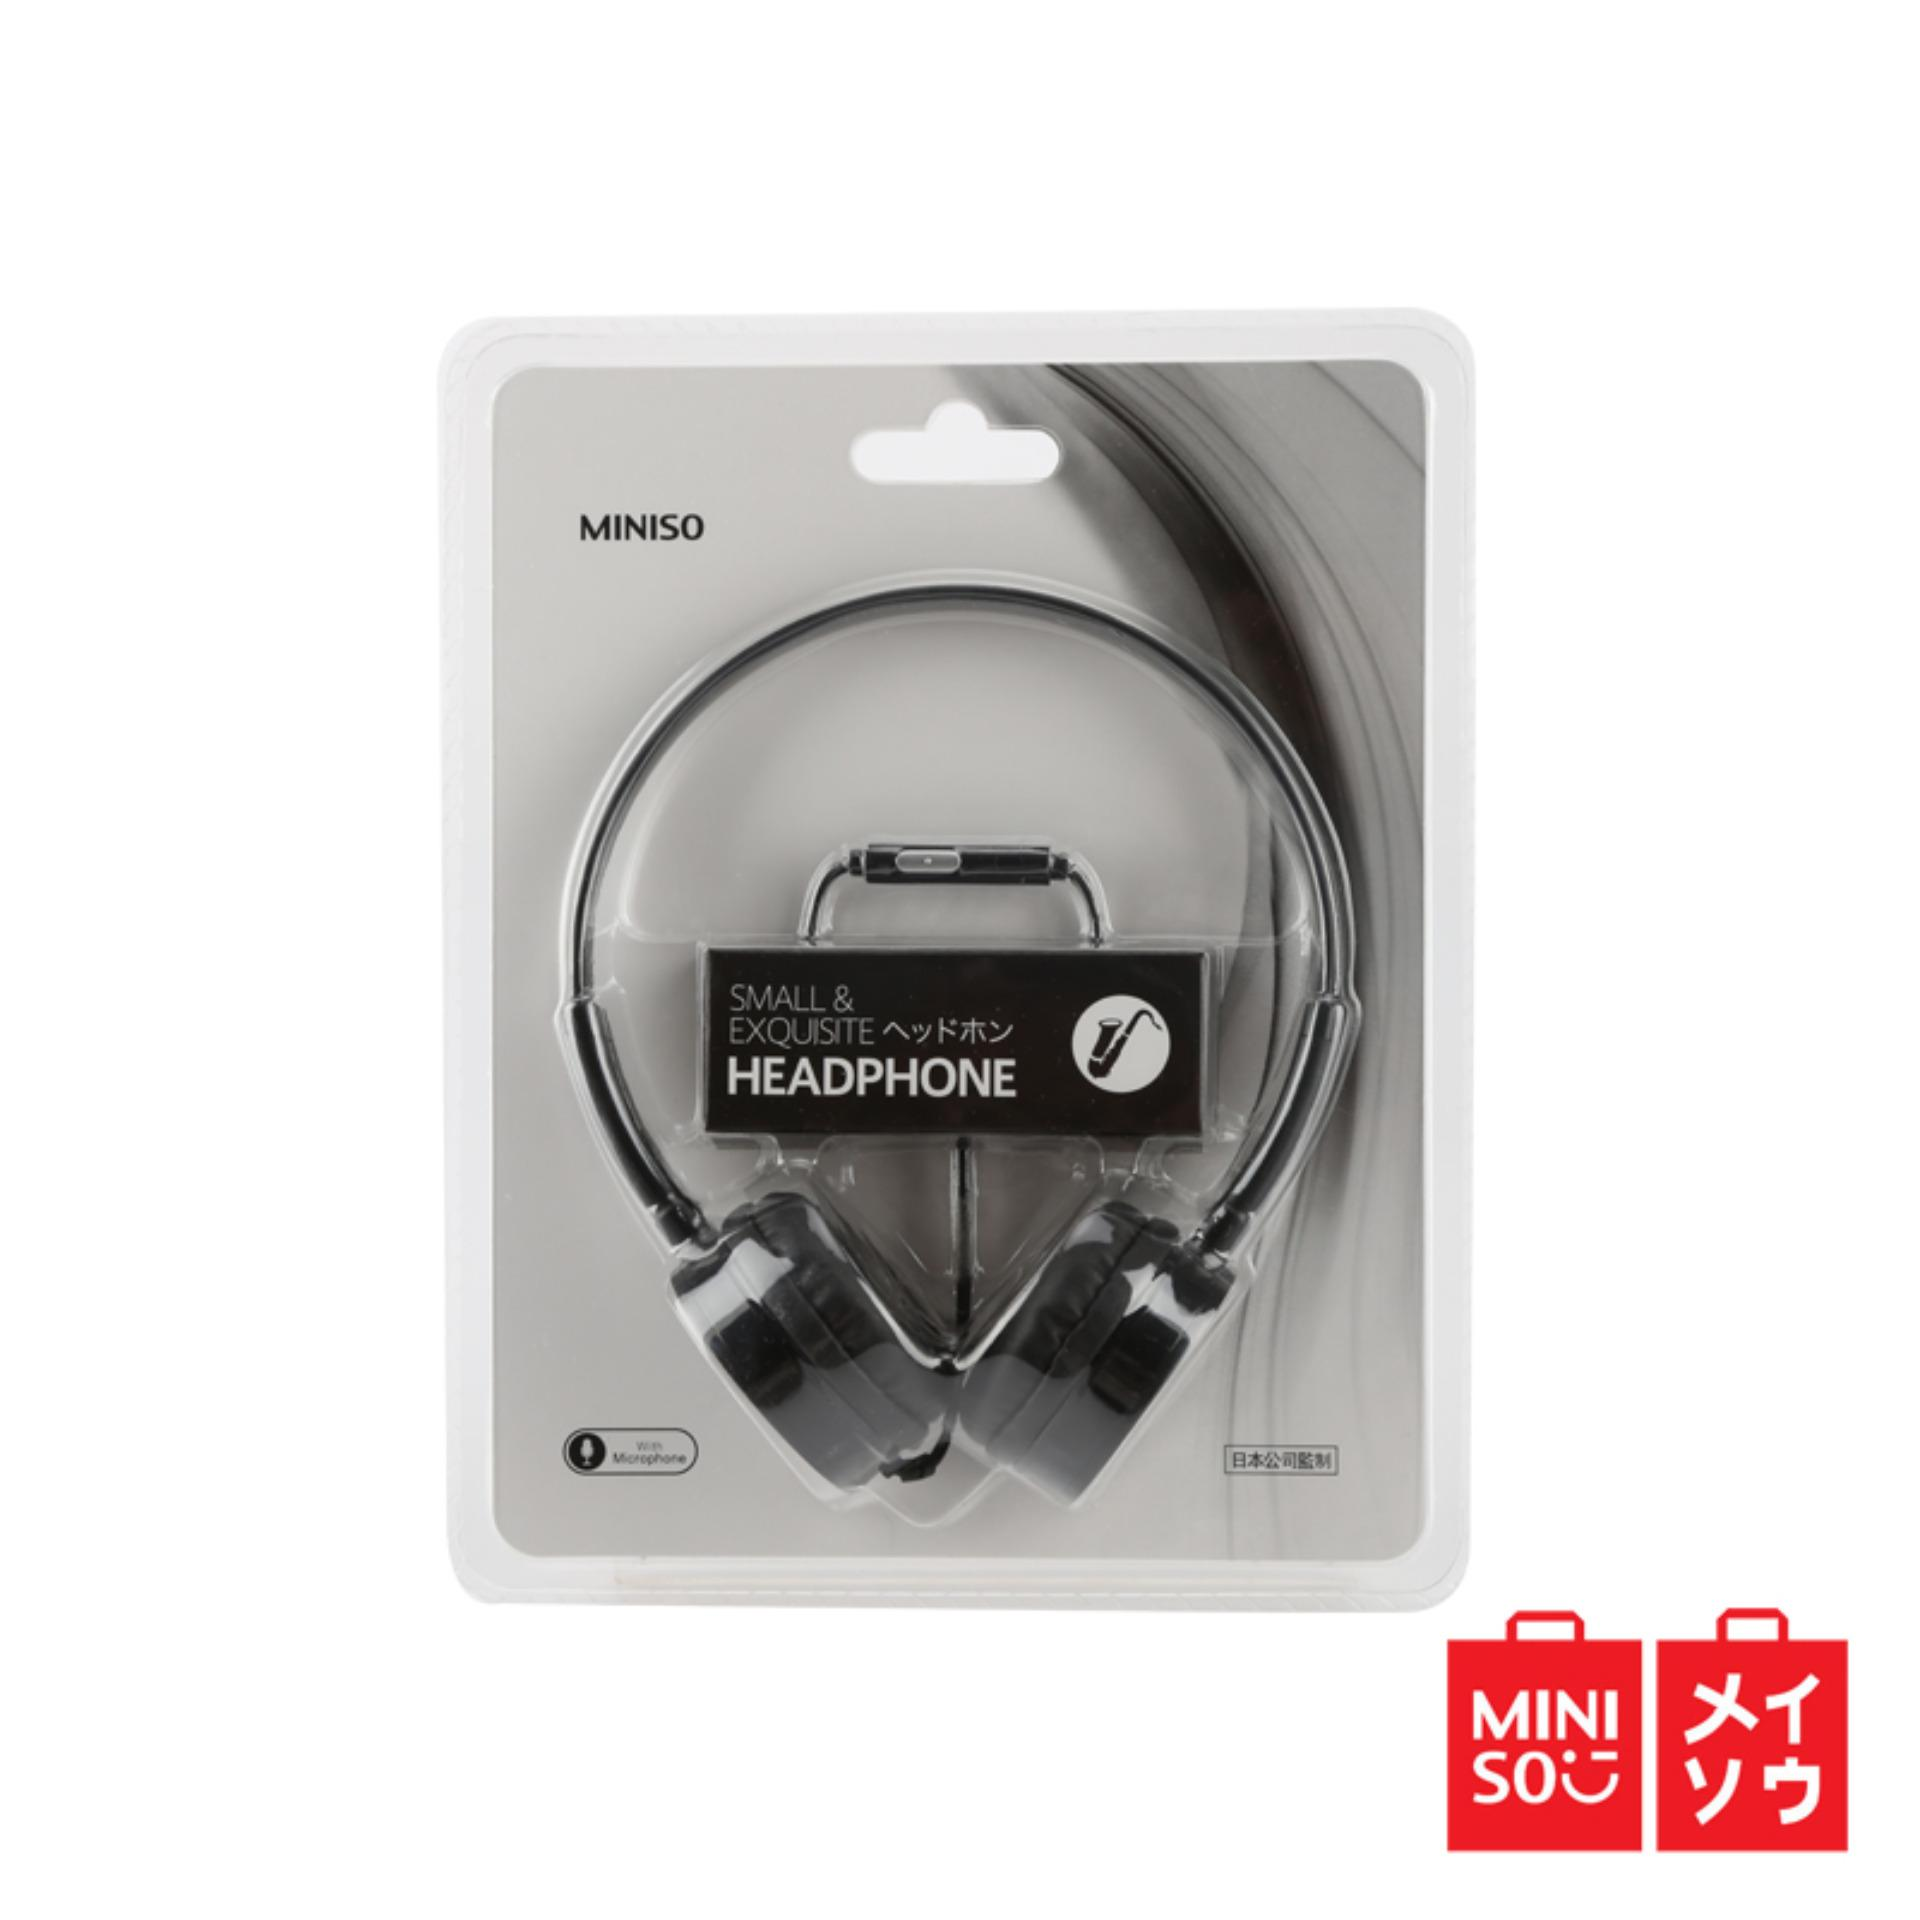 Harga Hemat Miniso Official Lovely Headphone